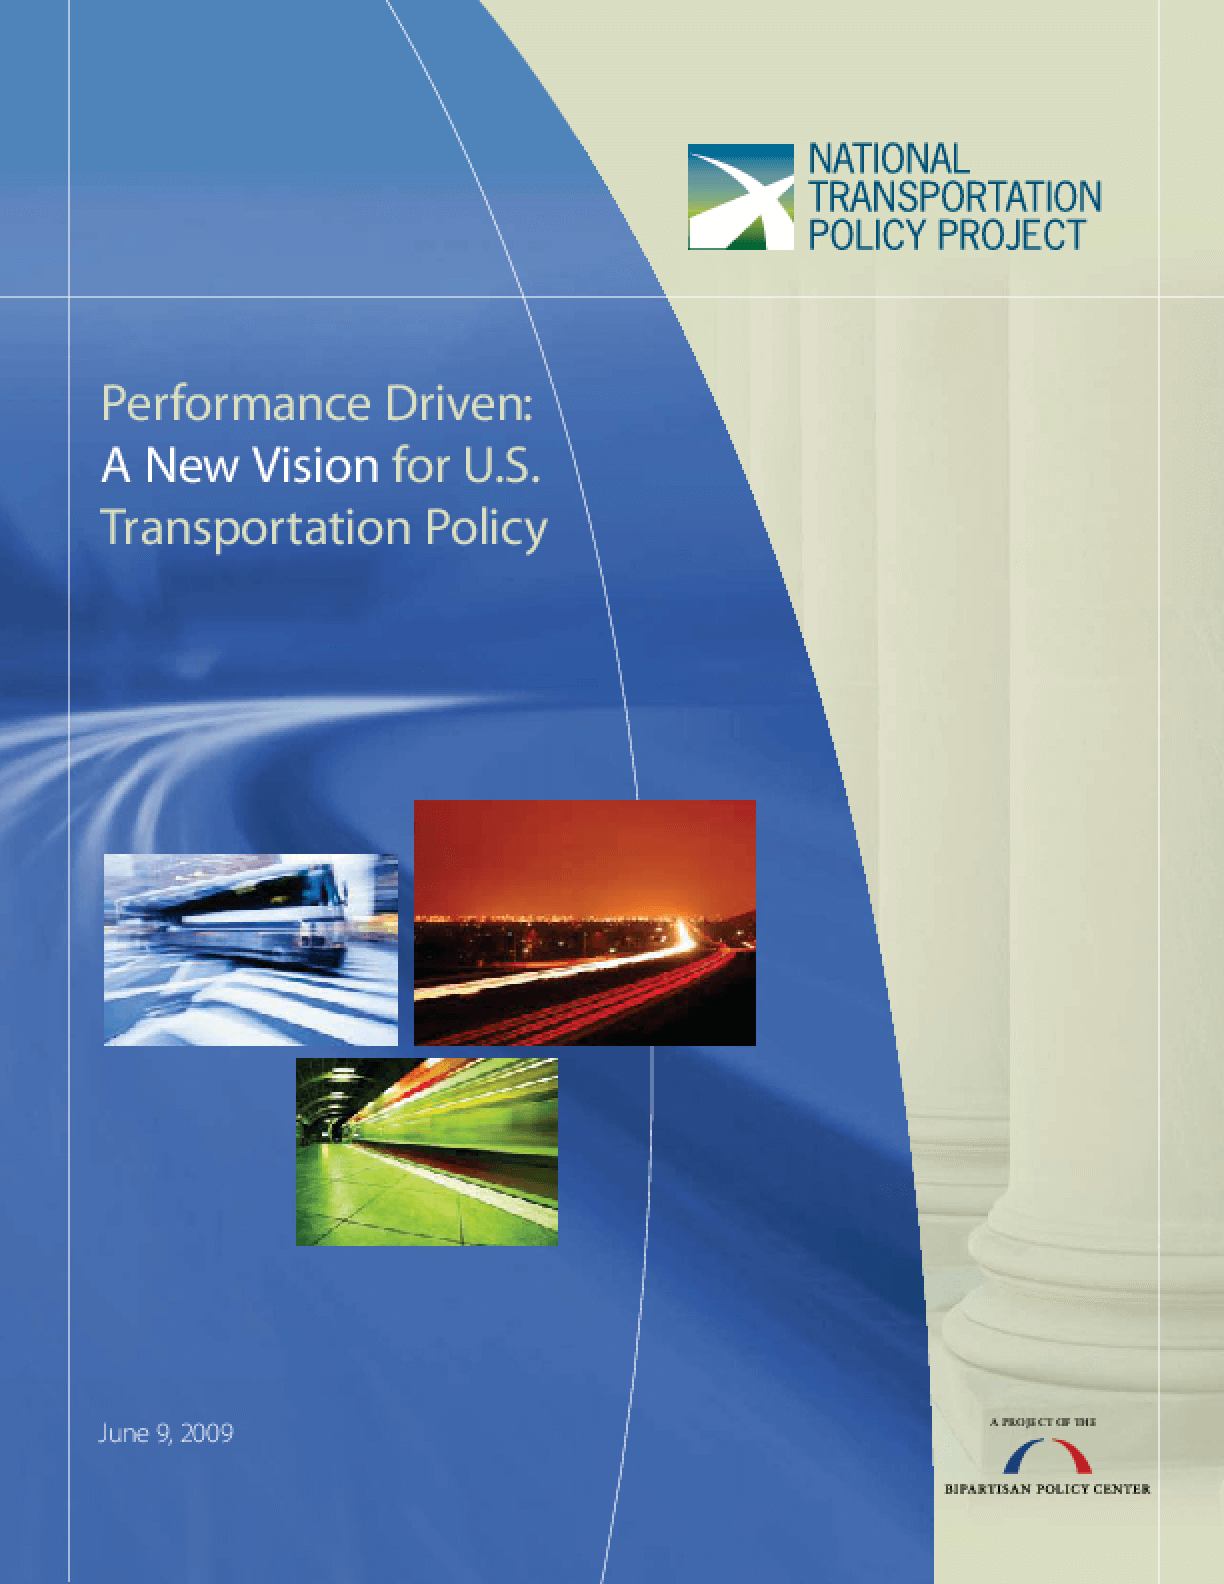 Performance Driven: A New Vision for U.S. Transportation Policy